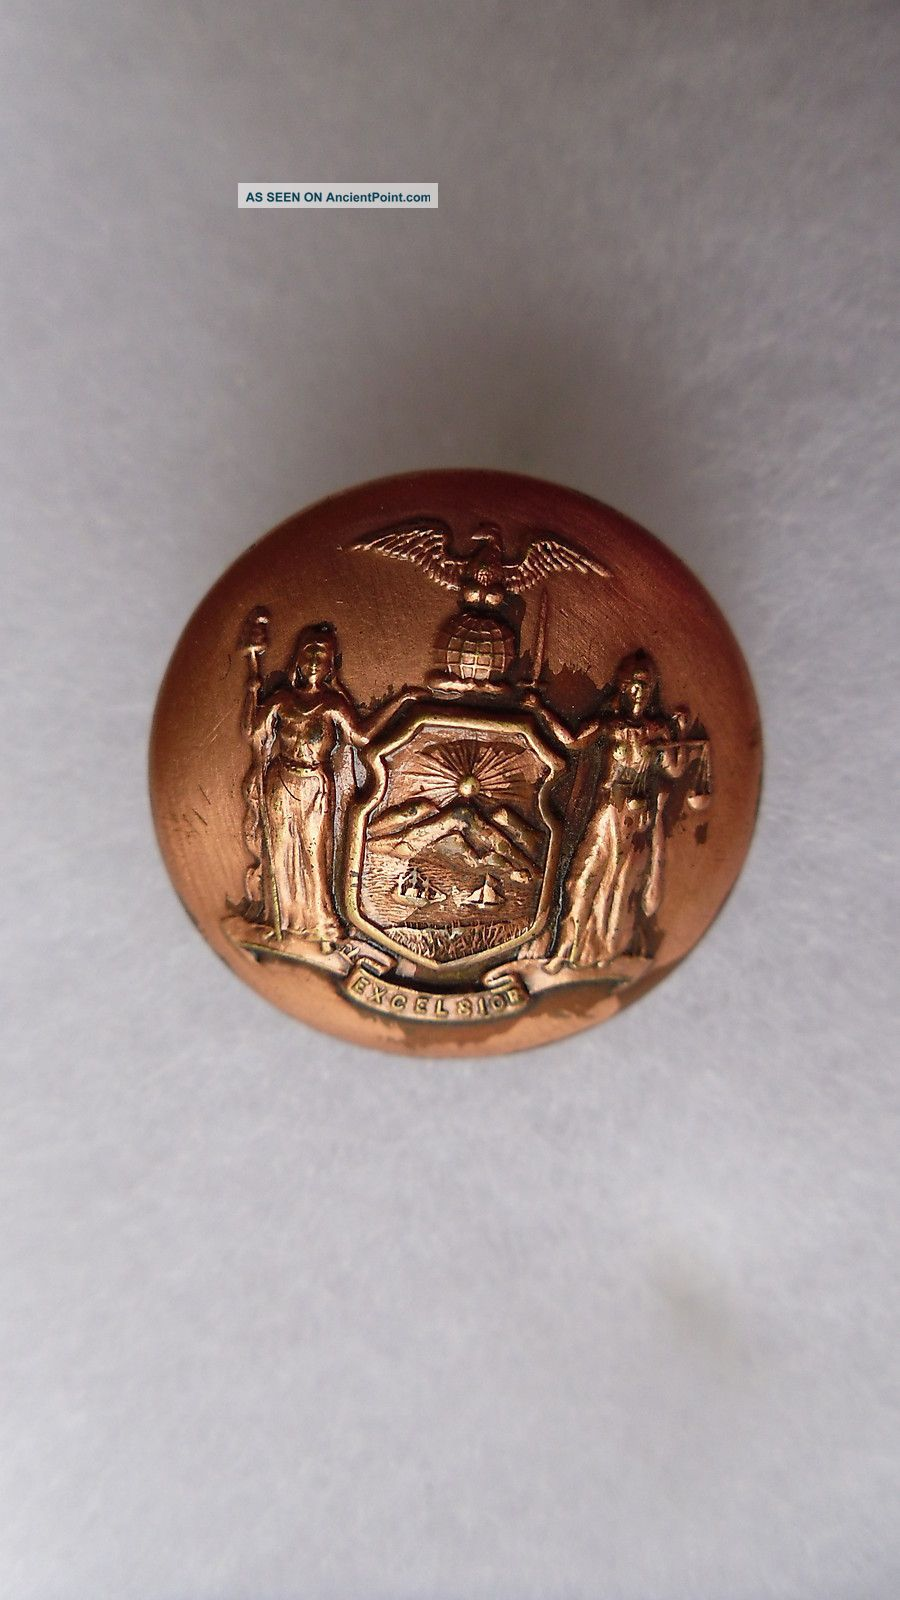 Antique New York State Seal Coat Button Scovill Mfg Co Waterbury 23 Mm Buttons photo